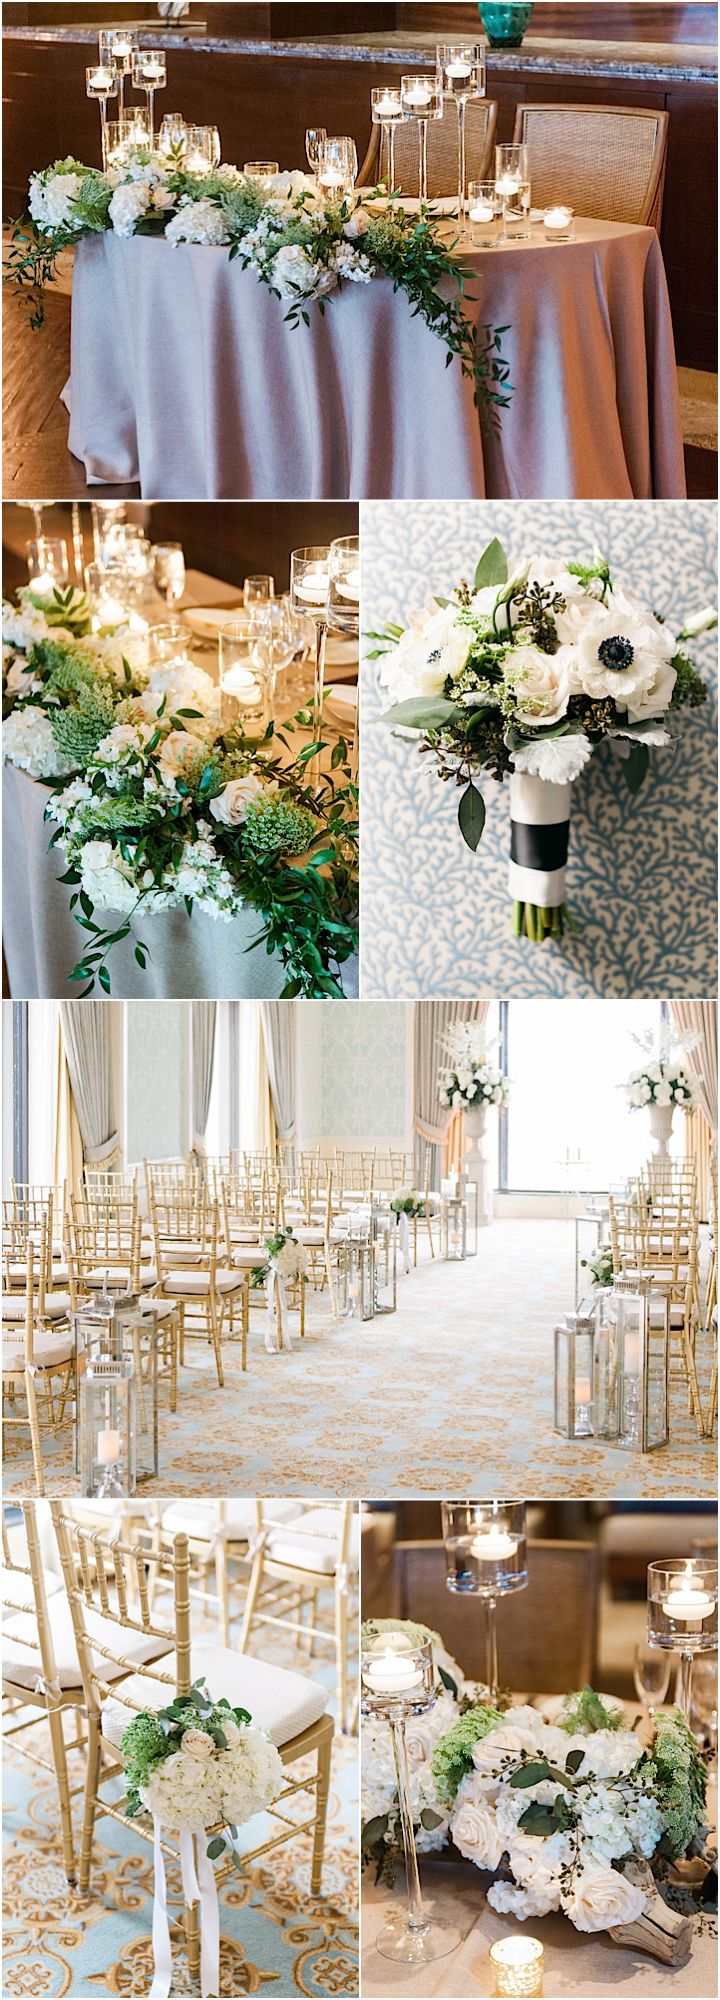 The 1712 best wedding decorations images on Pinterest | Weddings ...